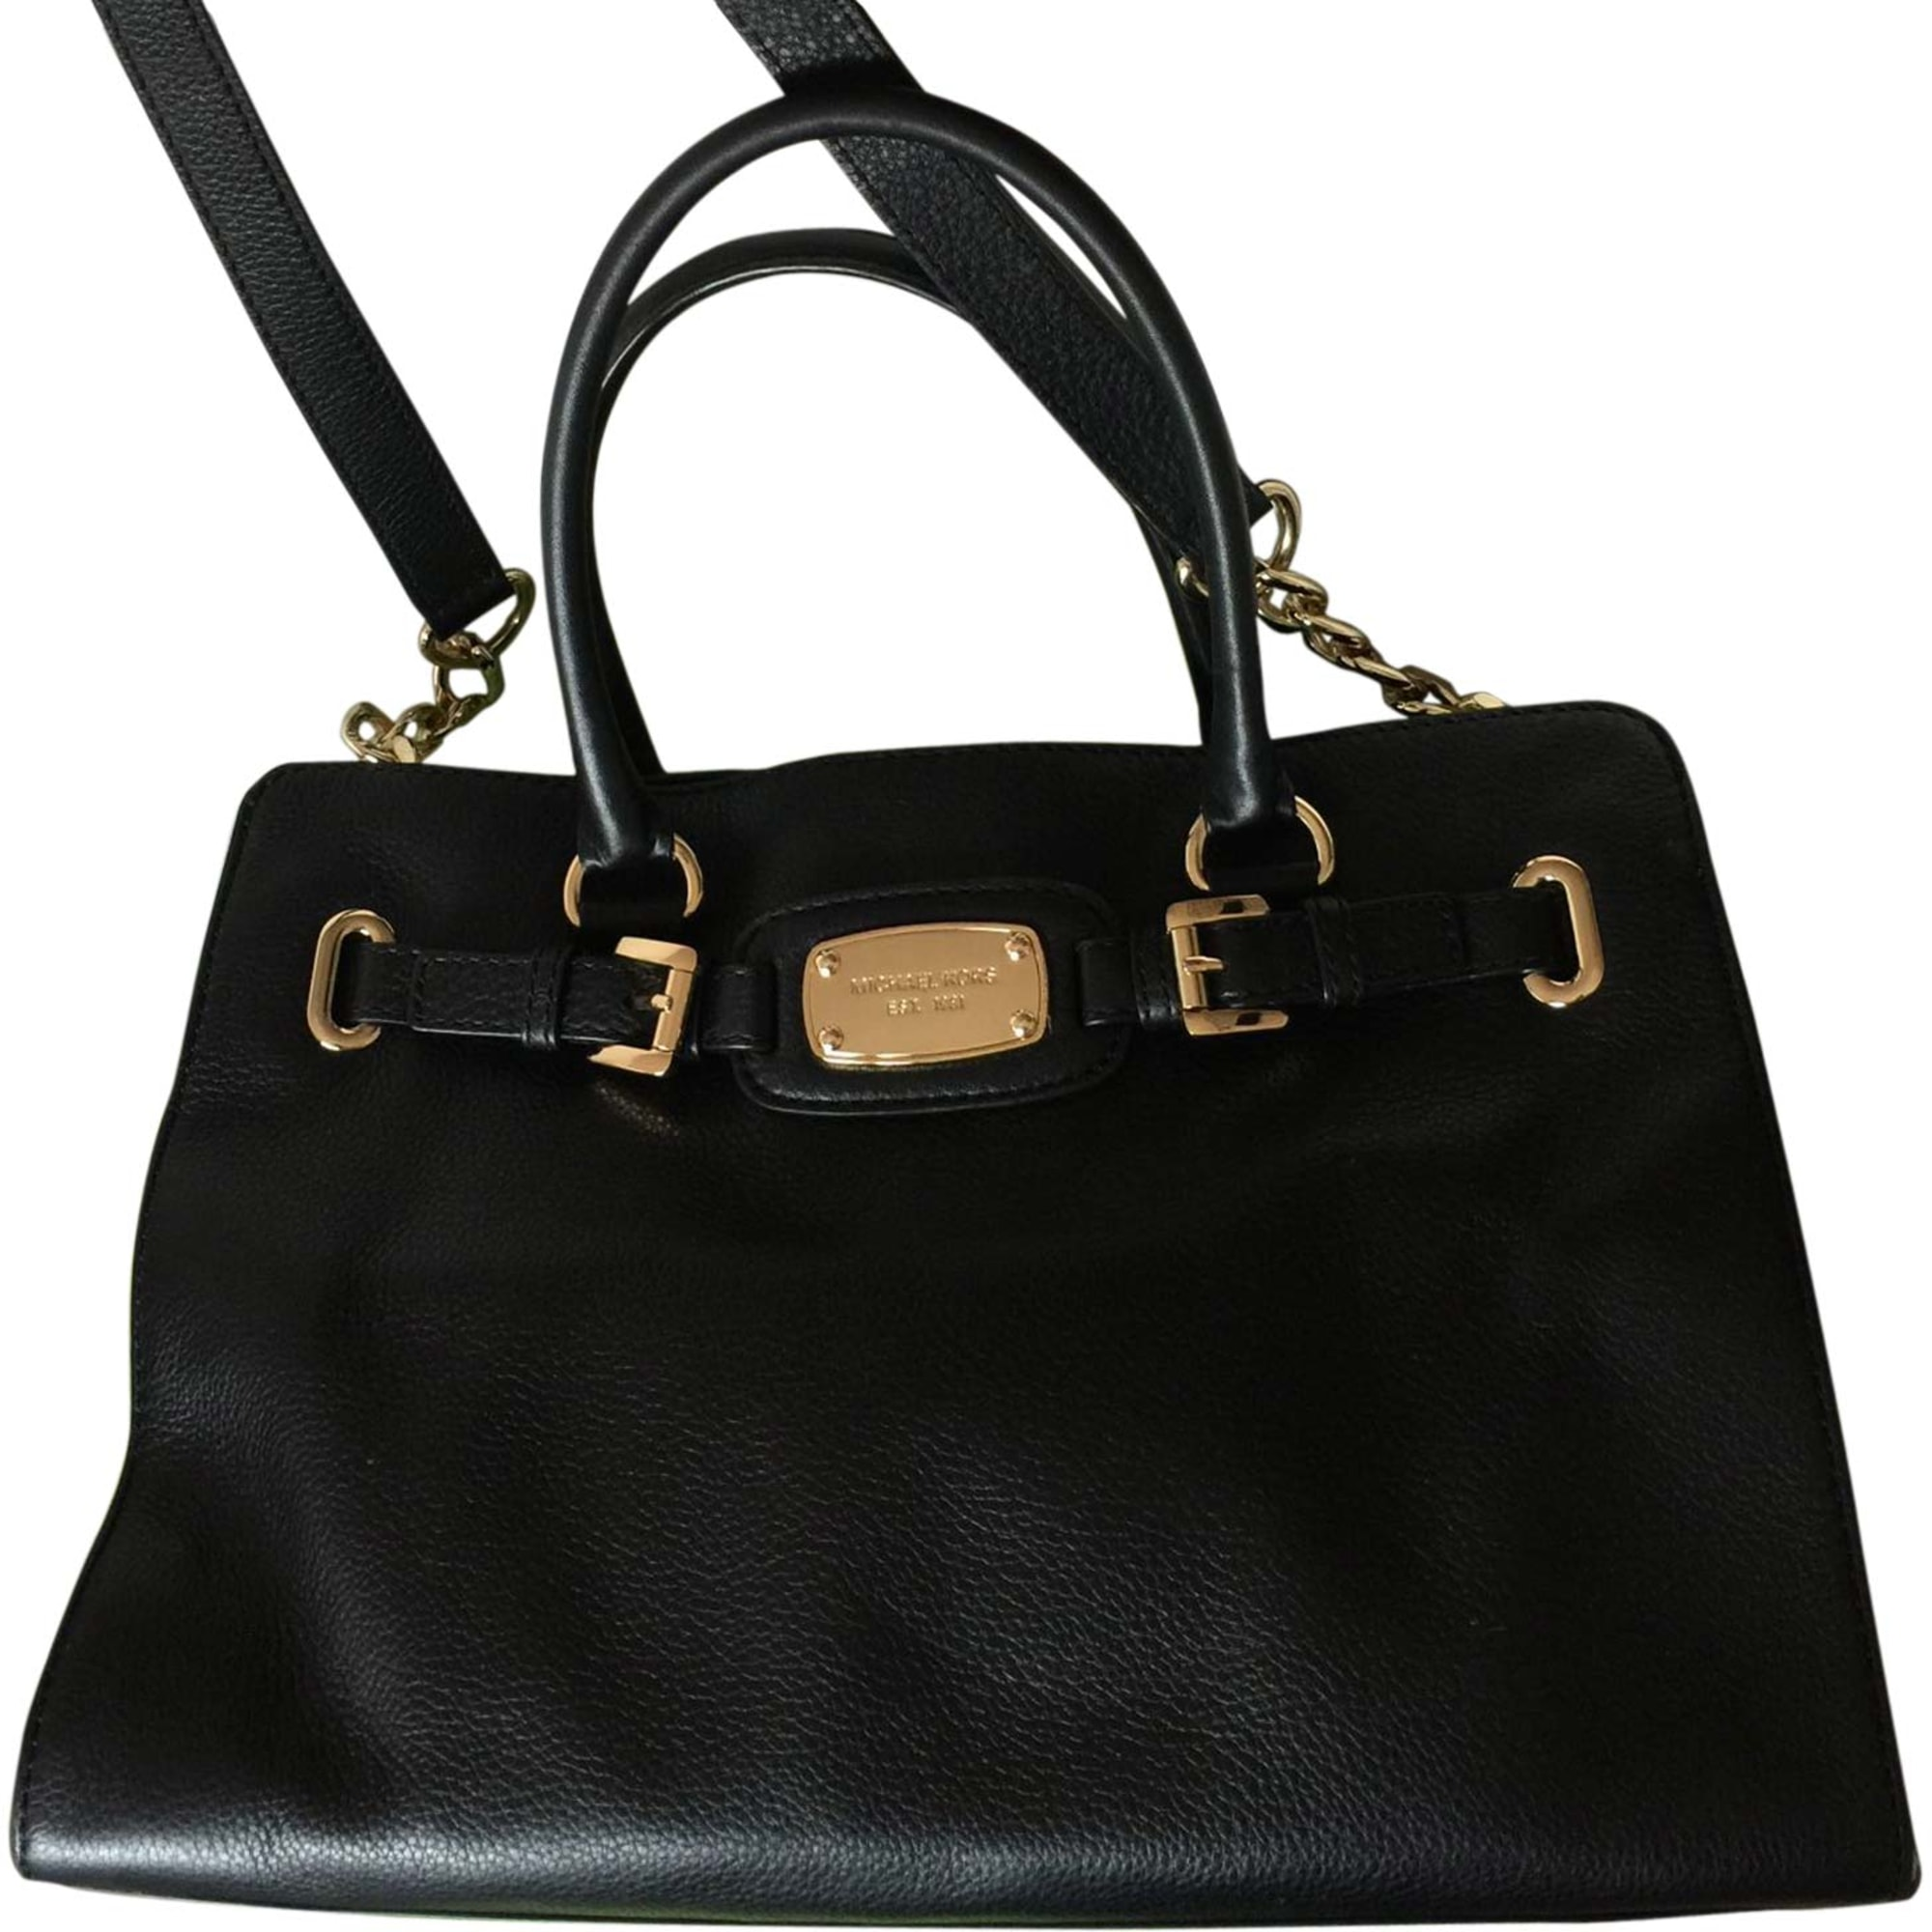 Leather Handbag MICHAEL KORS Black